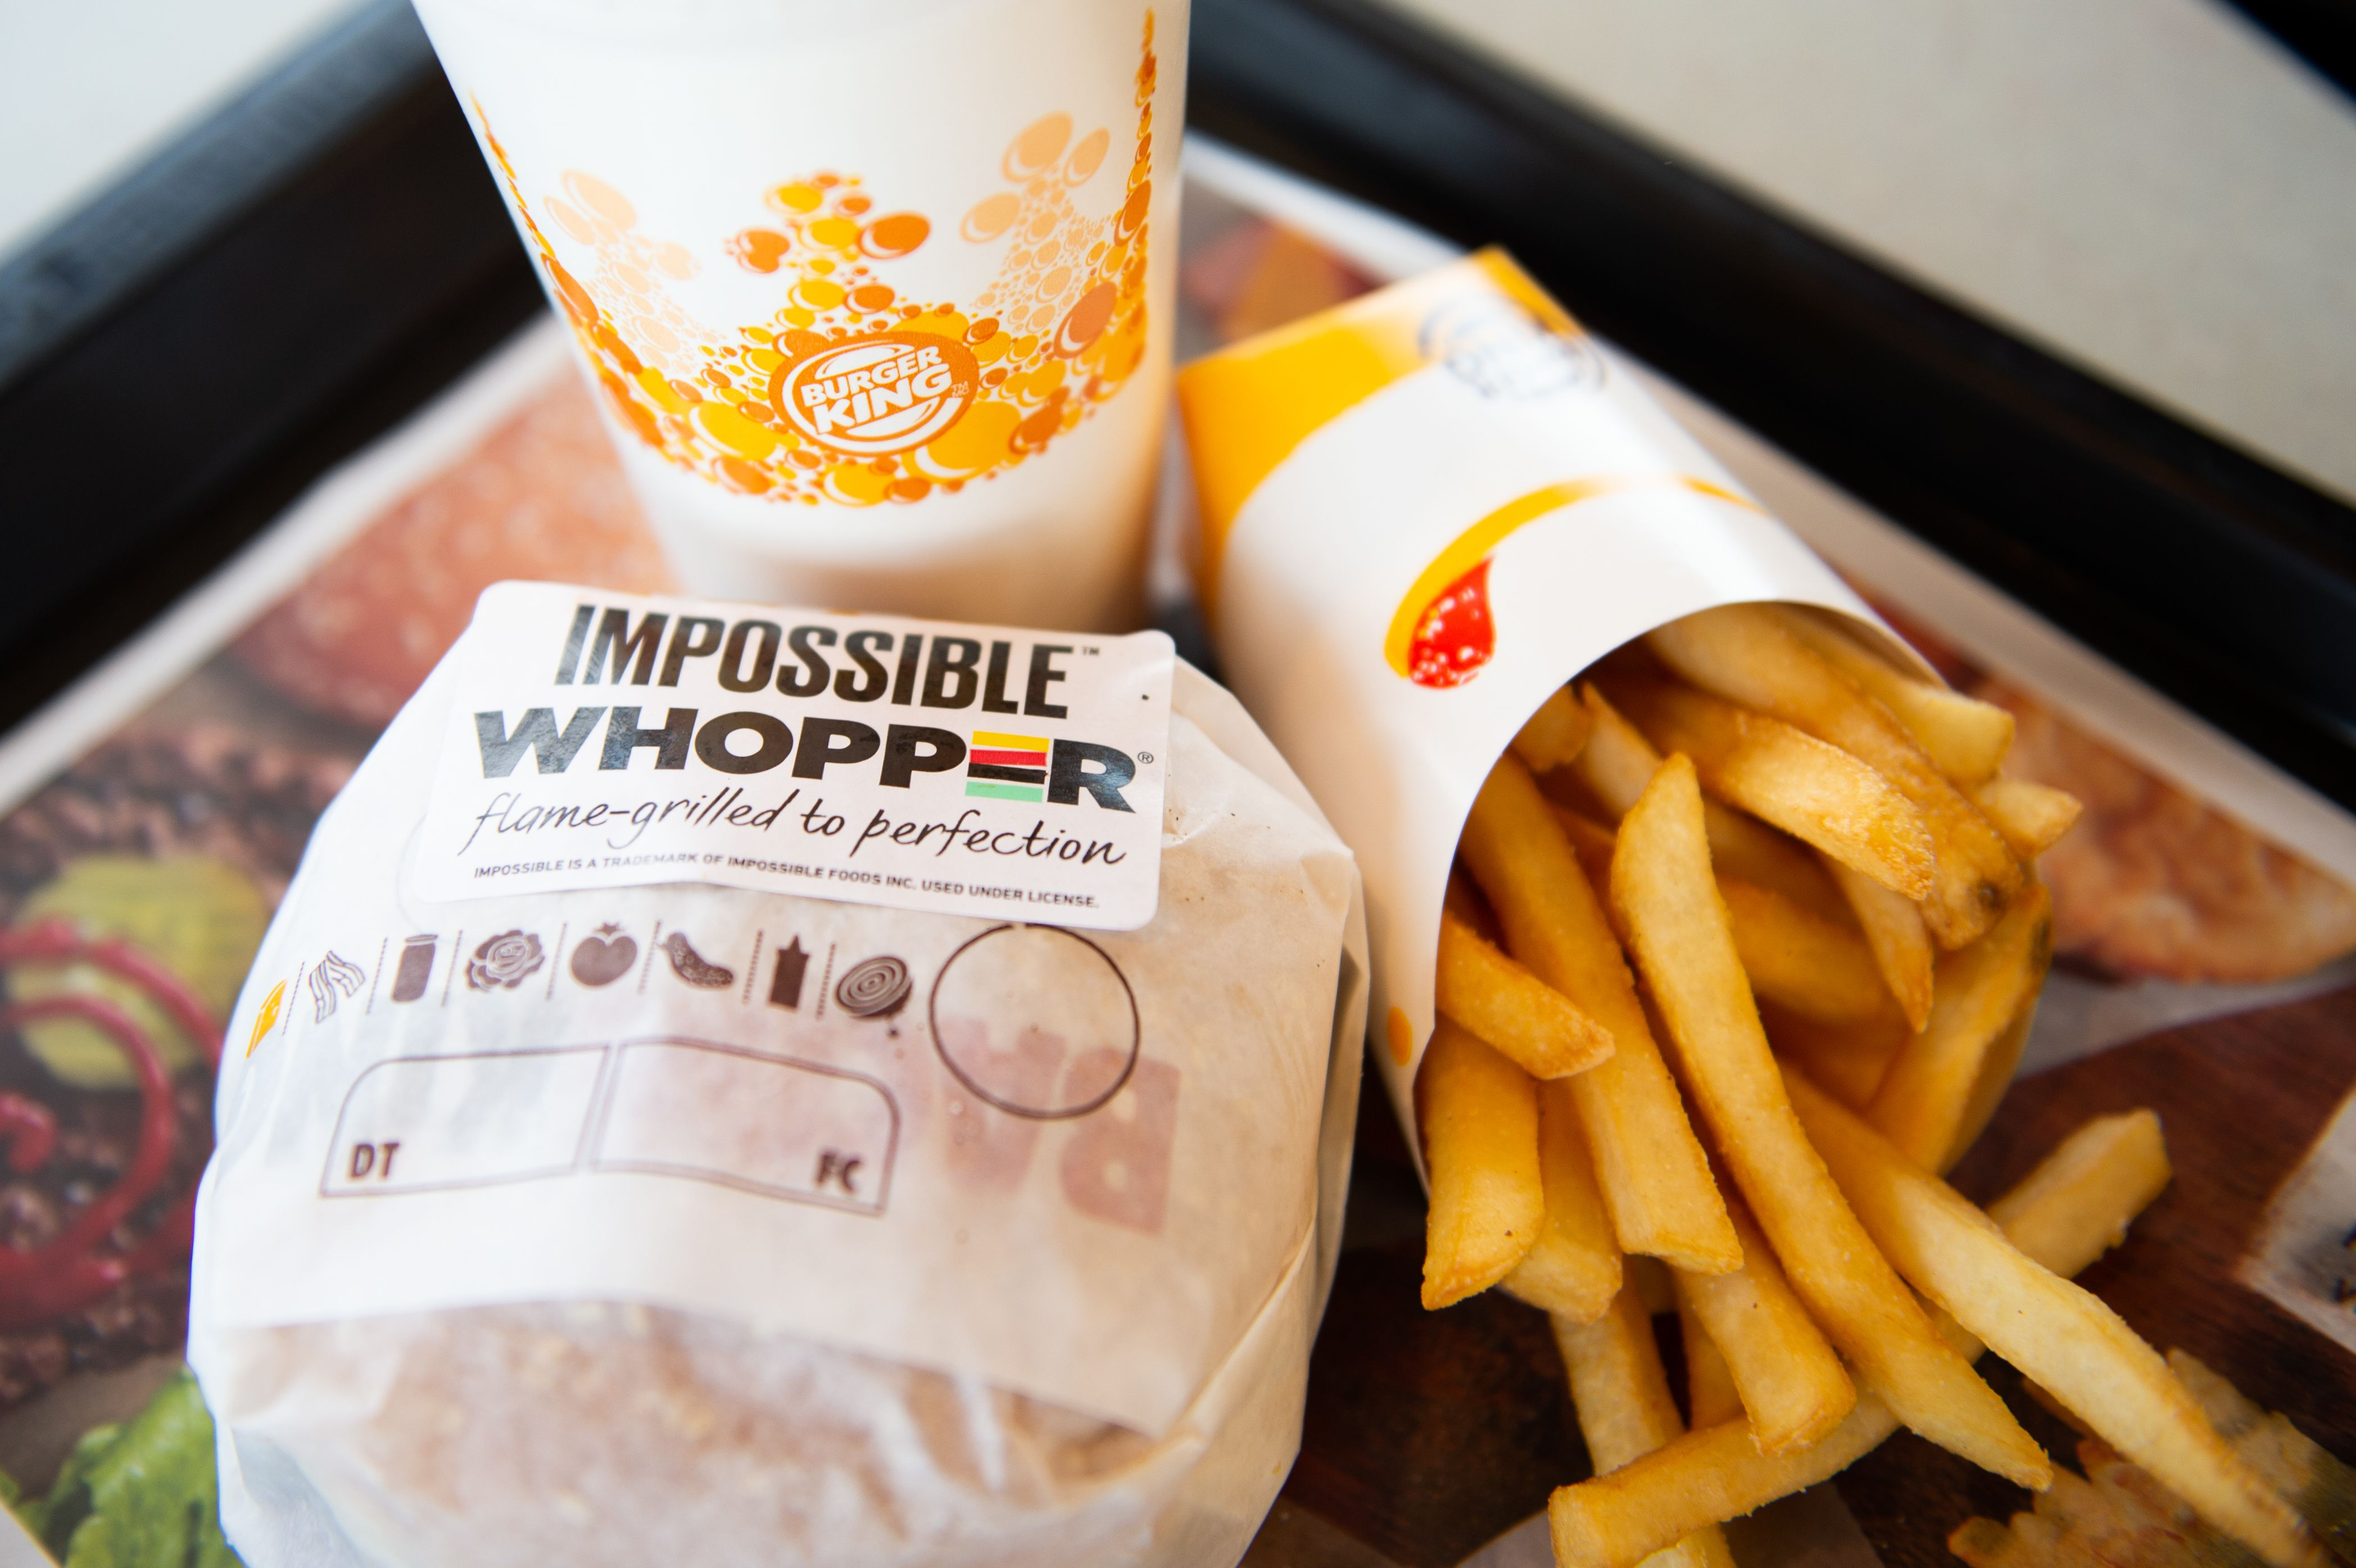 Impossible Whopper boosted Burger King traffic by 18%, report says